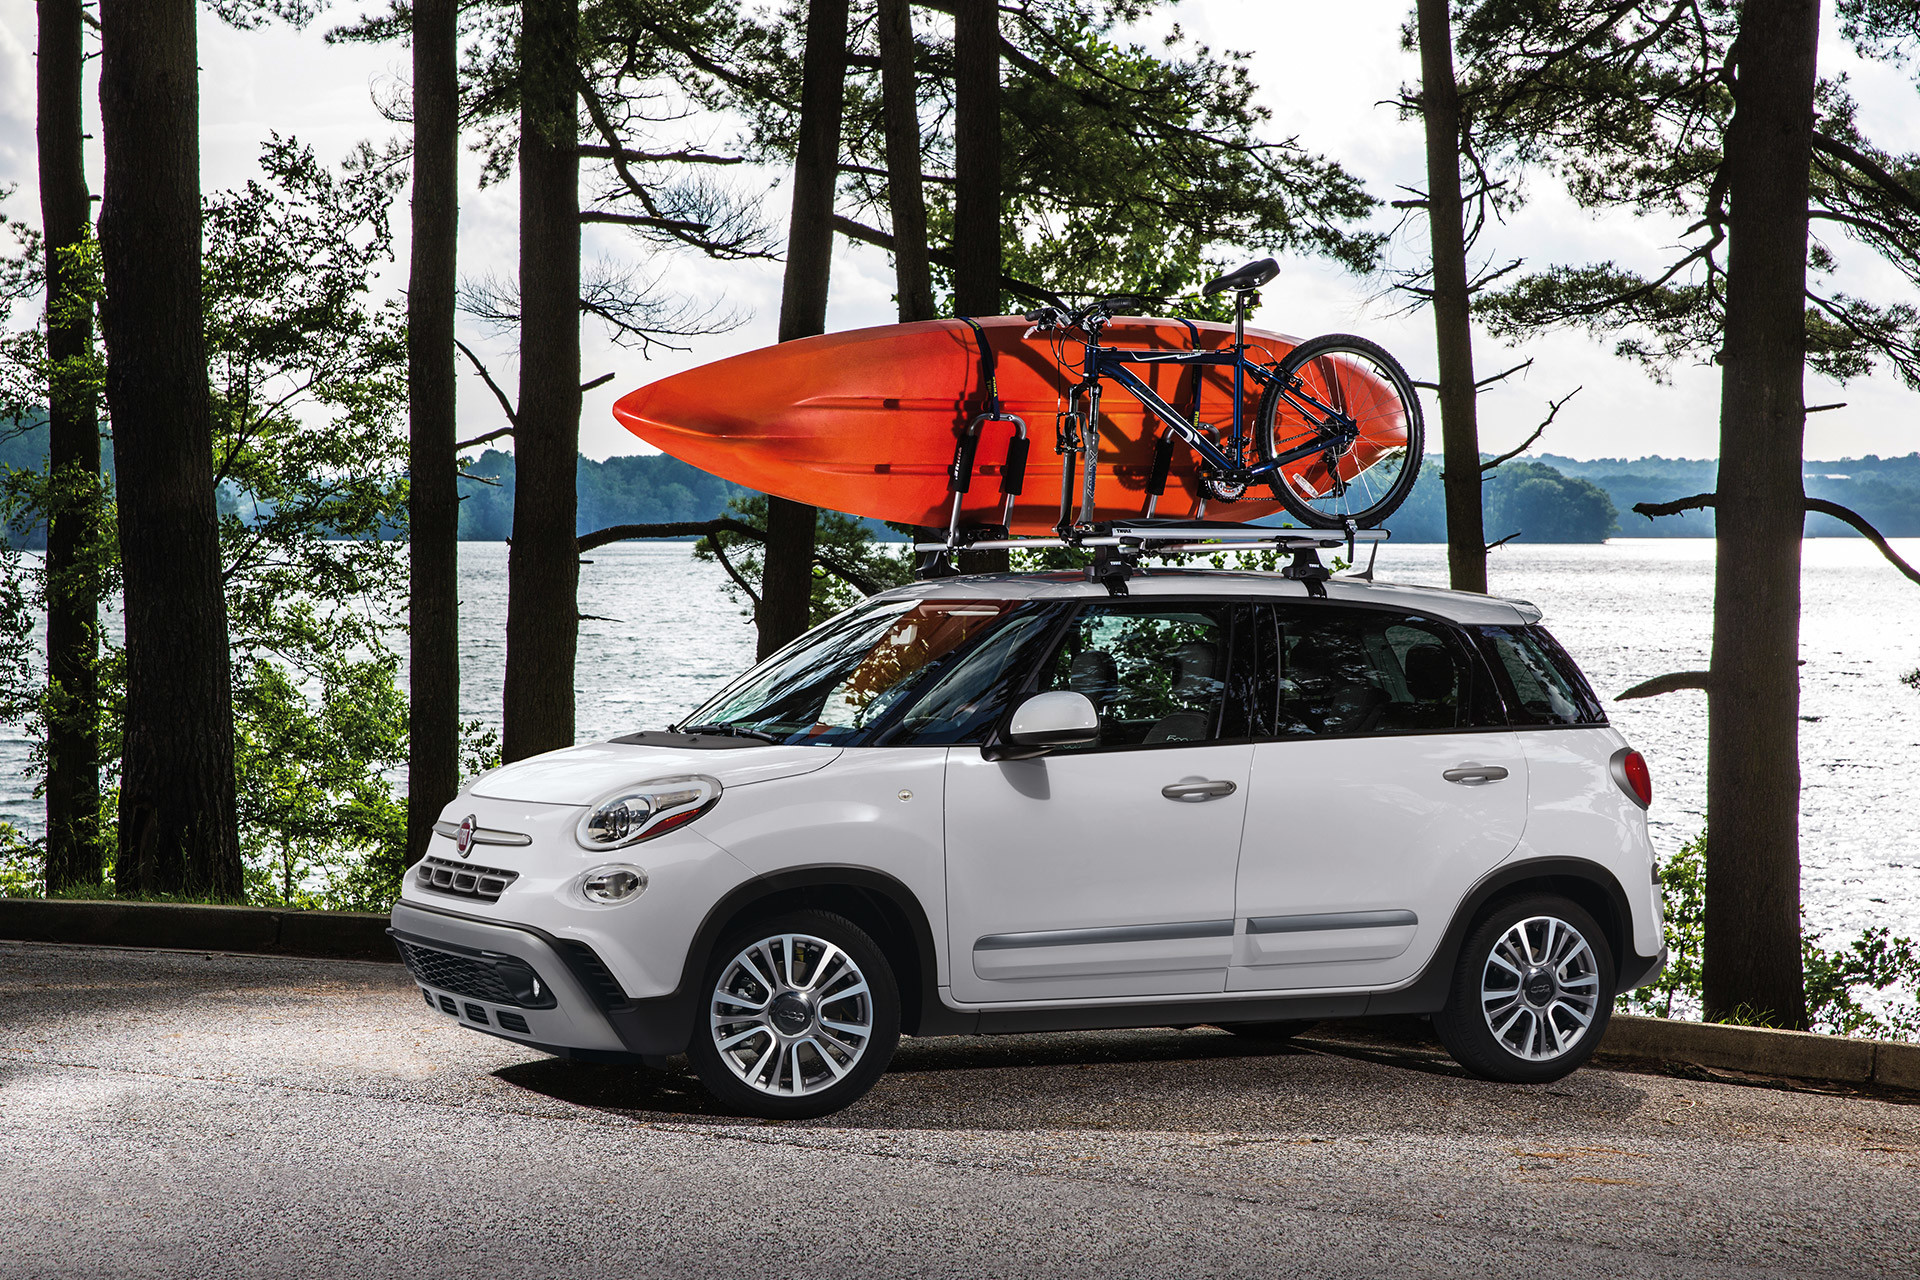 2019 Fiat 500L parked by a lake with a bicycle and kayak on the roof, shown in white